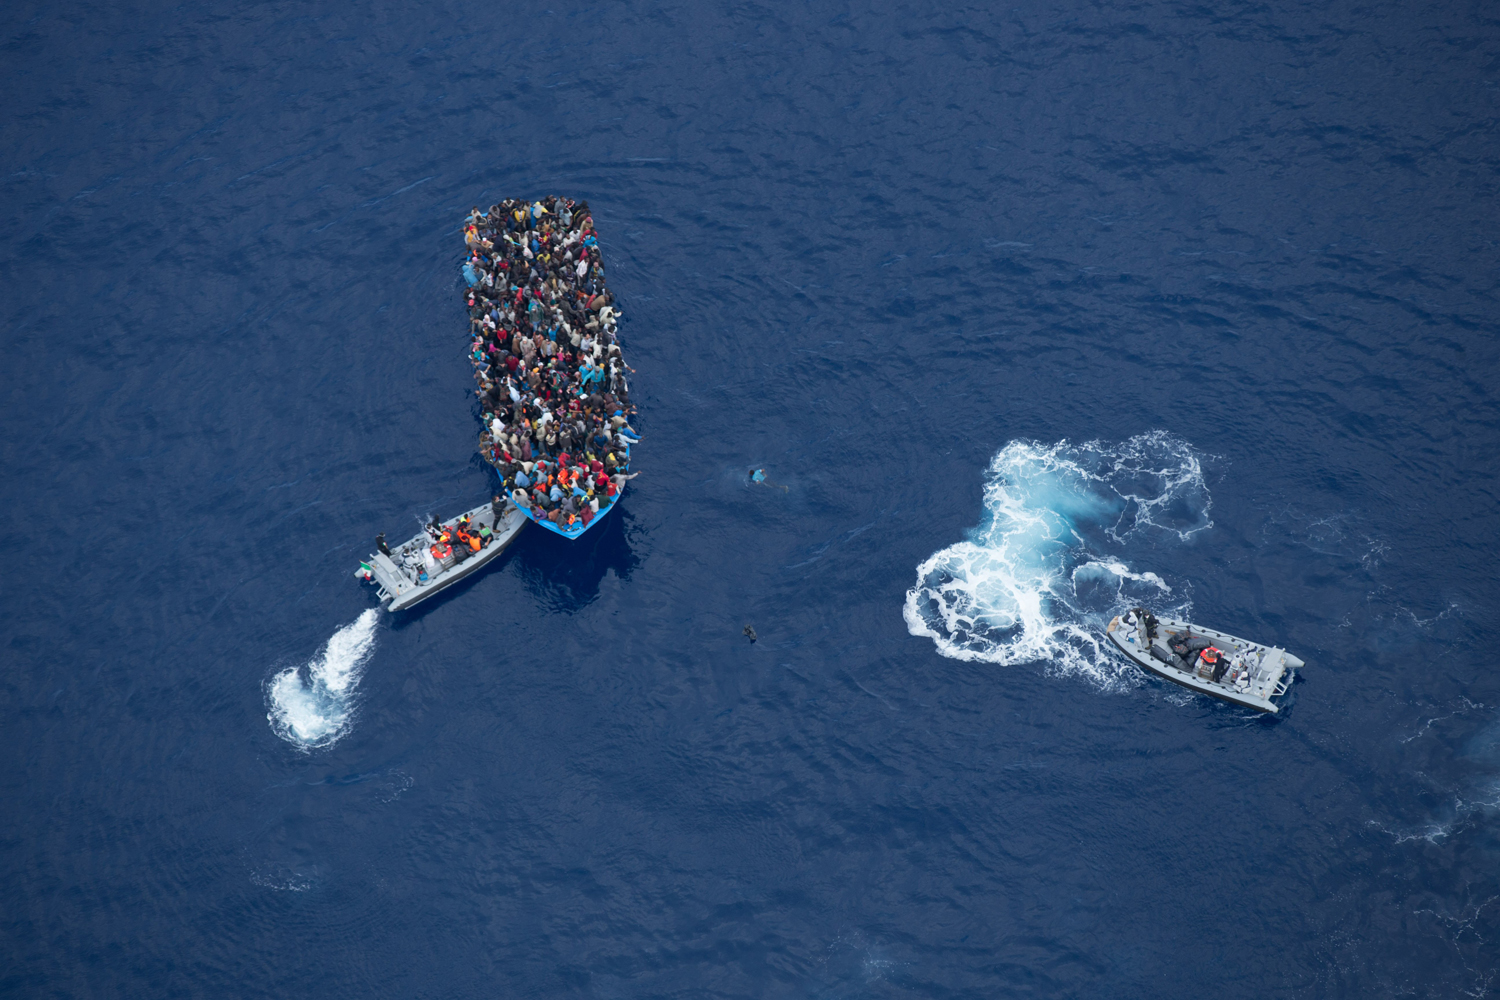 Italian navy rescues asylum seekers traveling by boat off the coast of Africa, June 7, 2014.